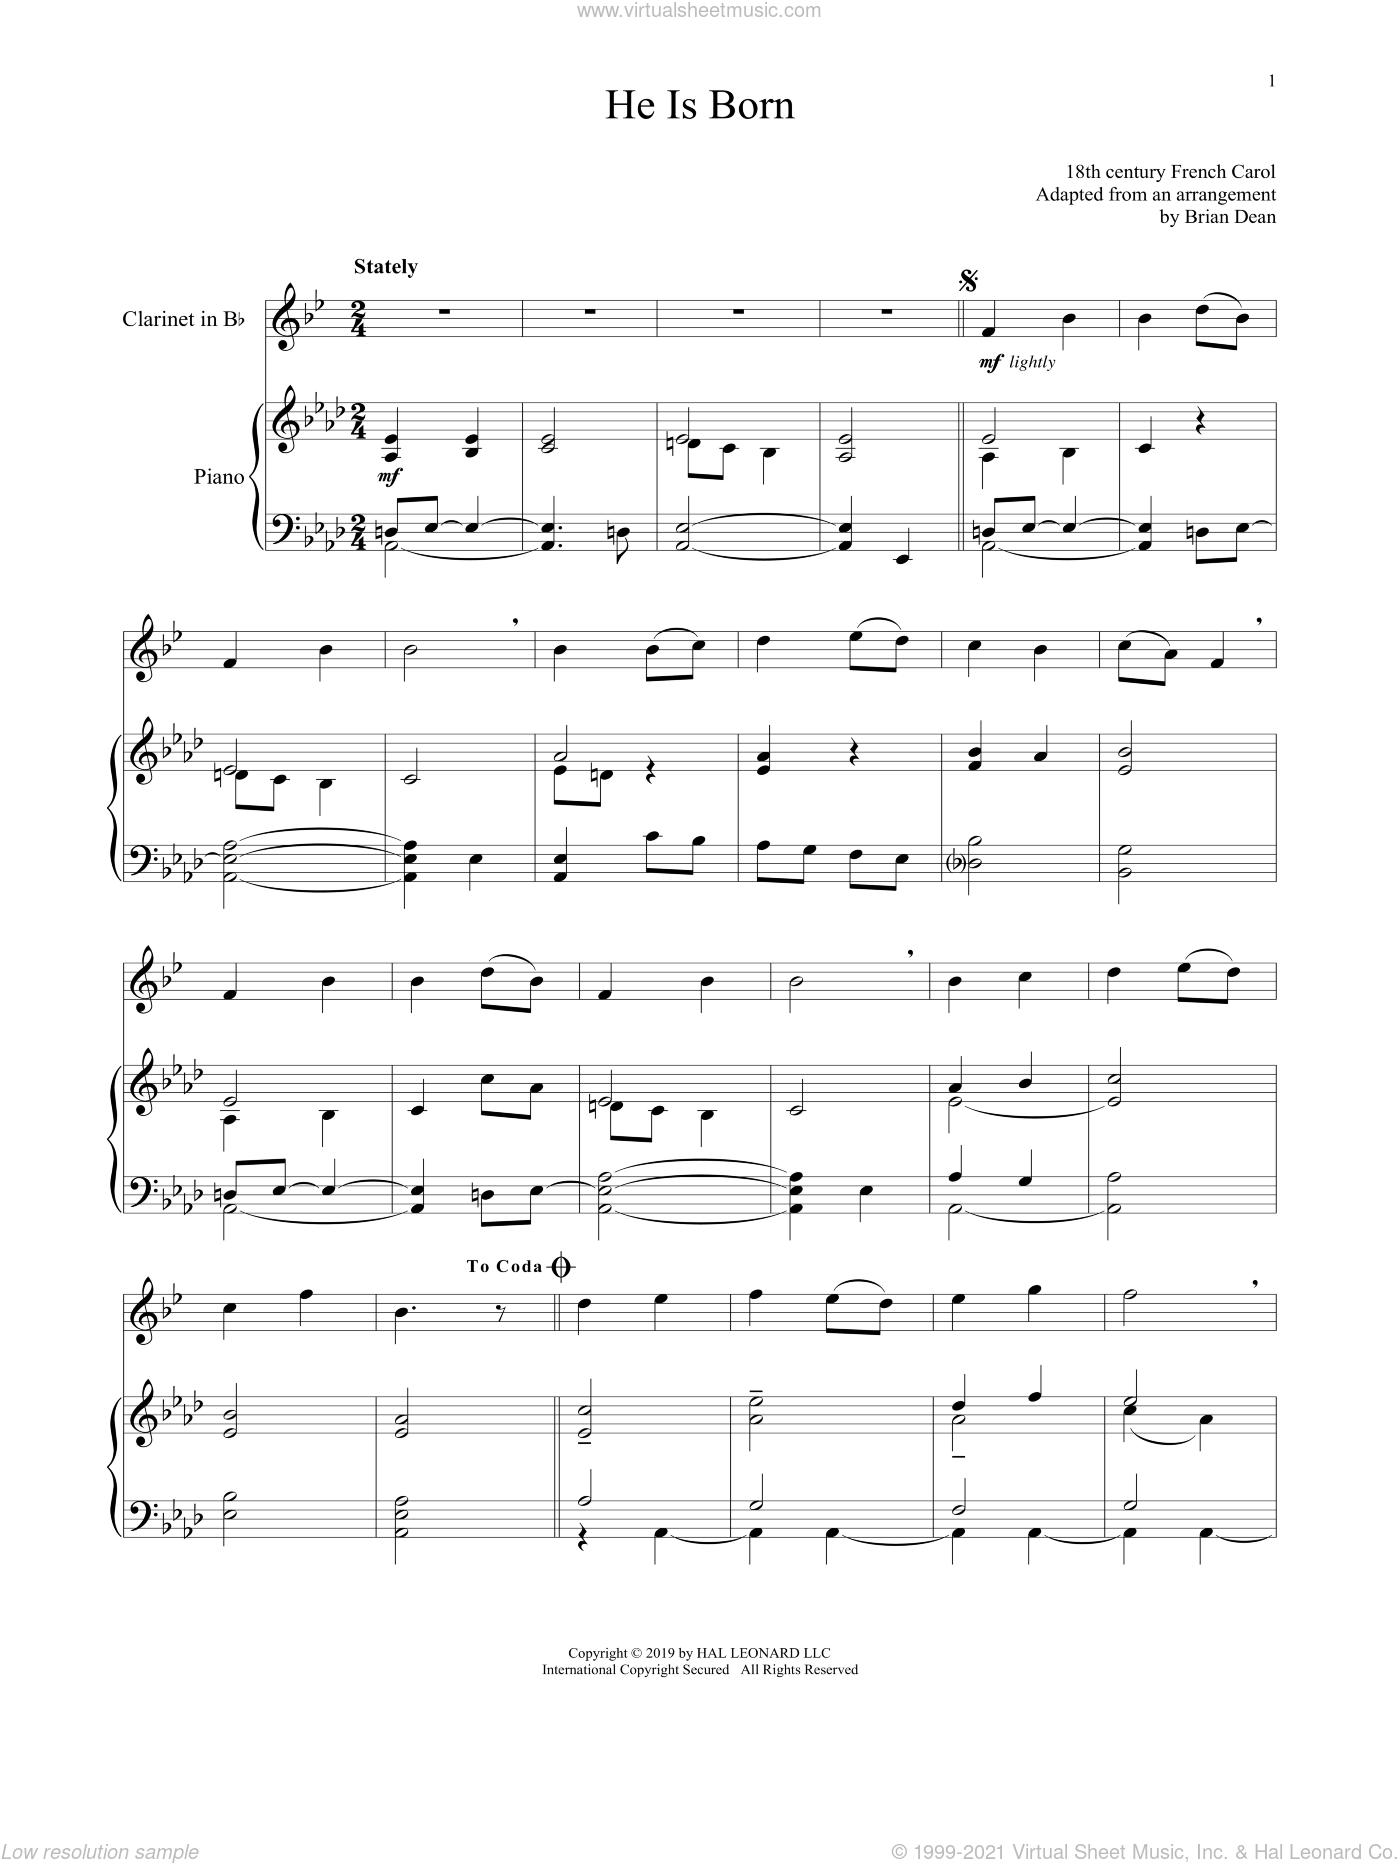 He Is Born sheet music for clarinet and piano, intermediate skill level